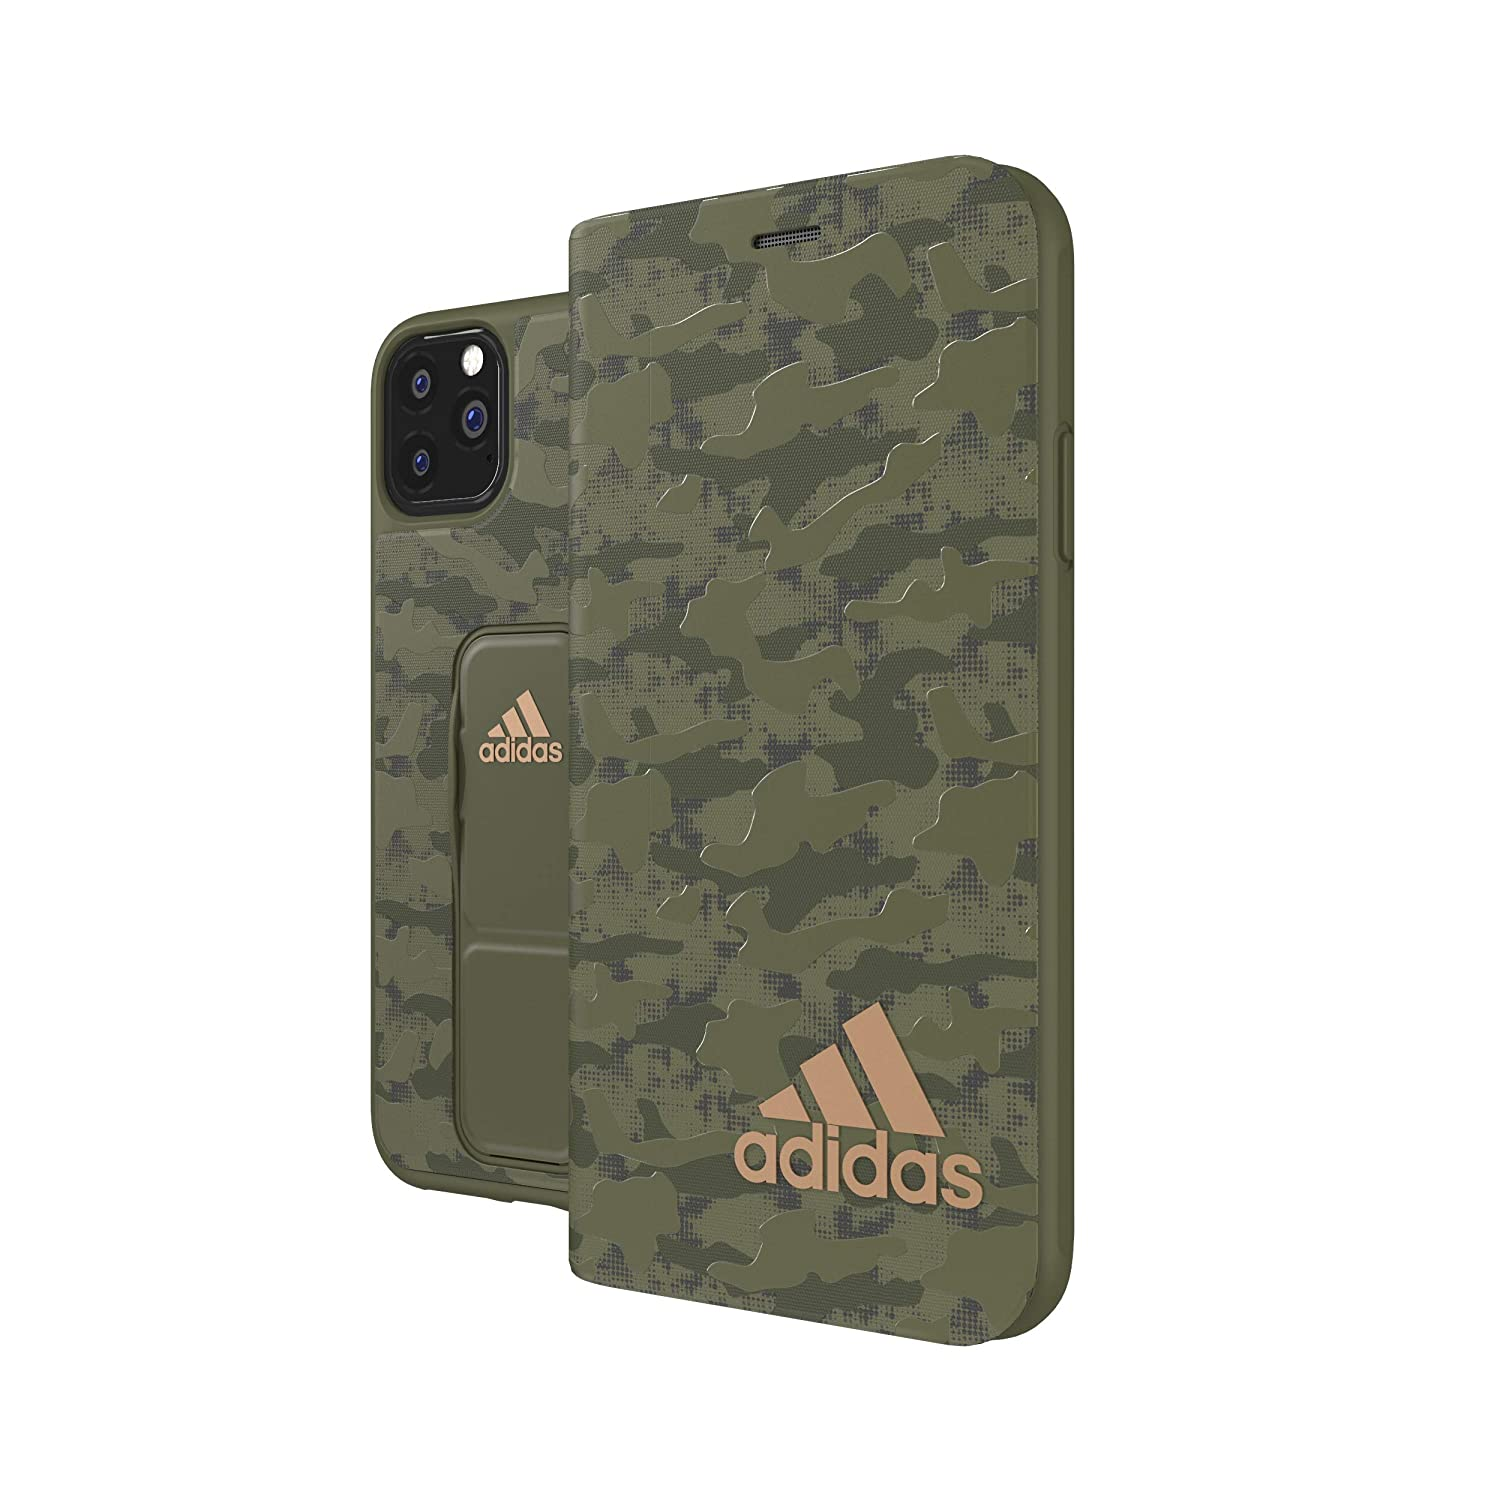 Amazon.com: adidas Sports Compatible with iPhone 2019 XS Max ...